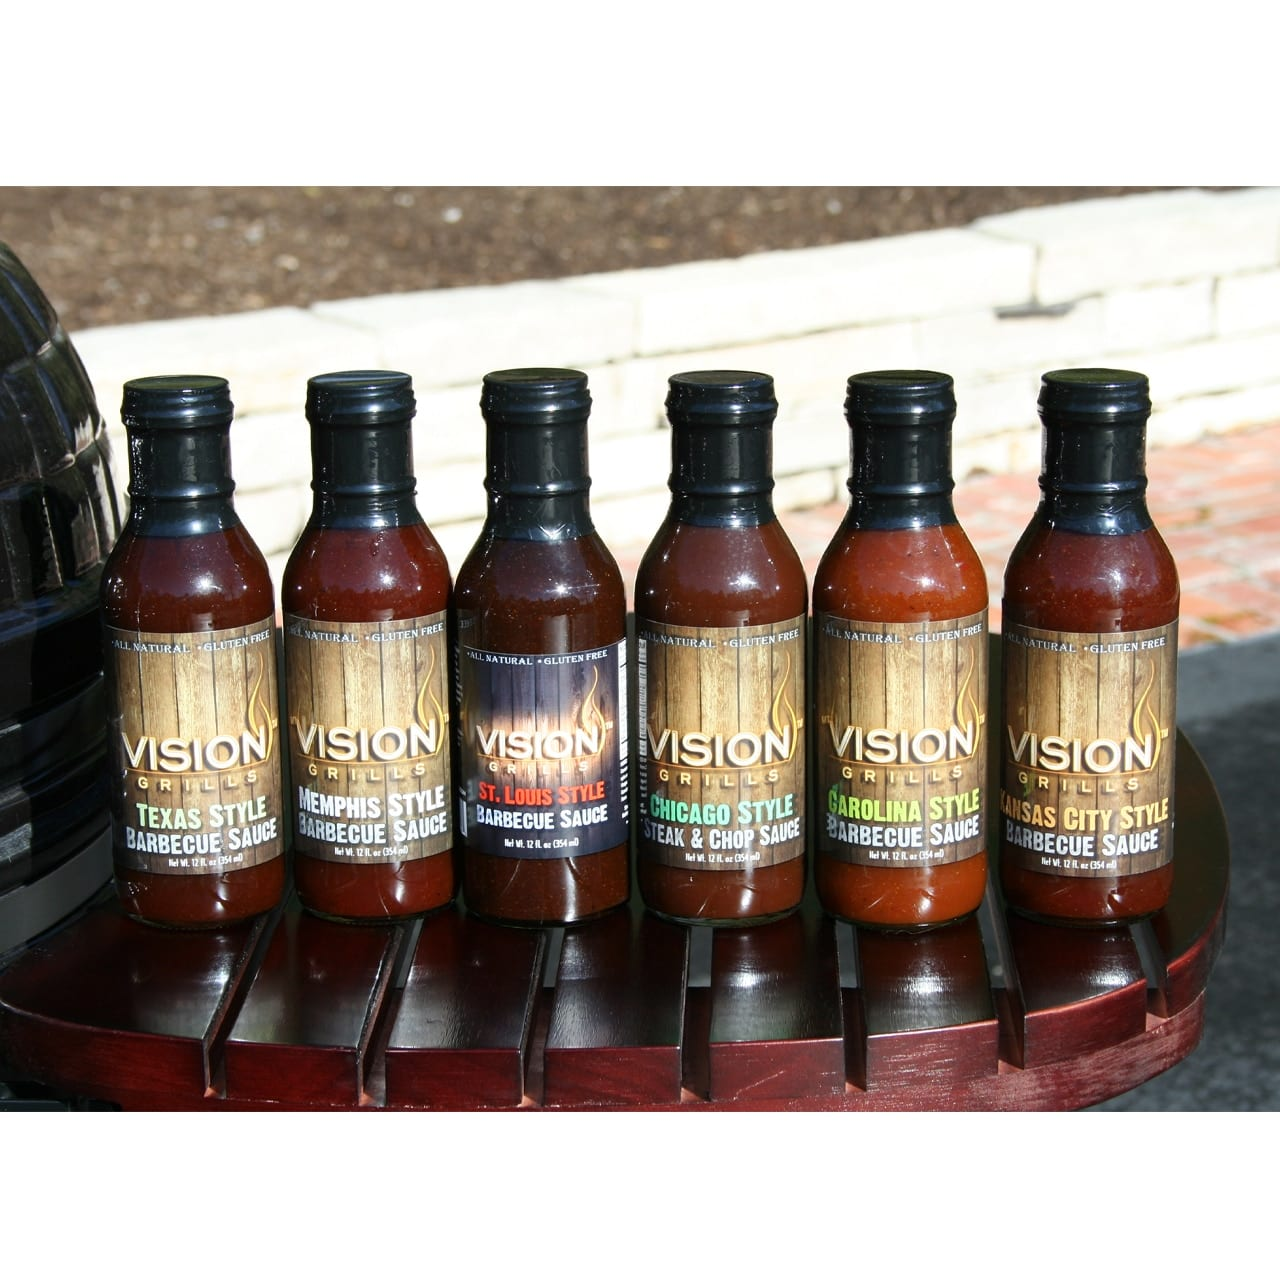 Memphis Style Barbecue Sauce Options